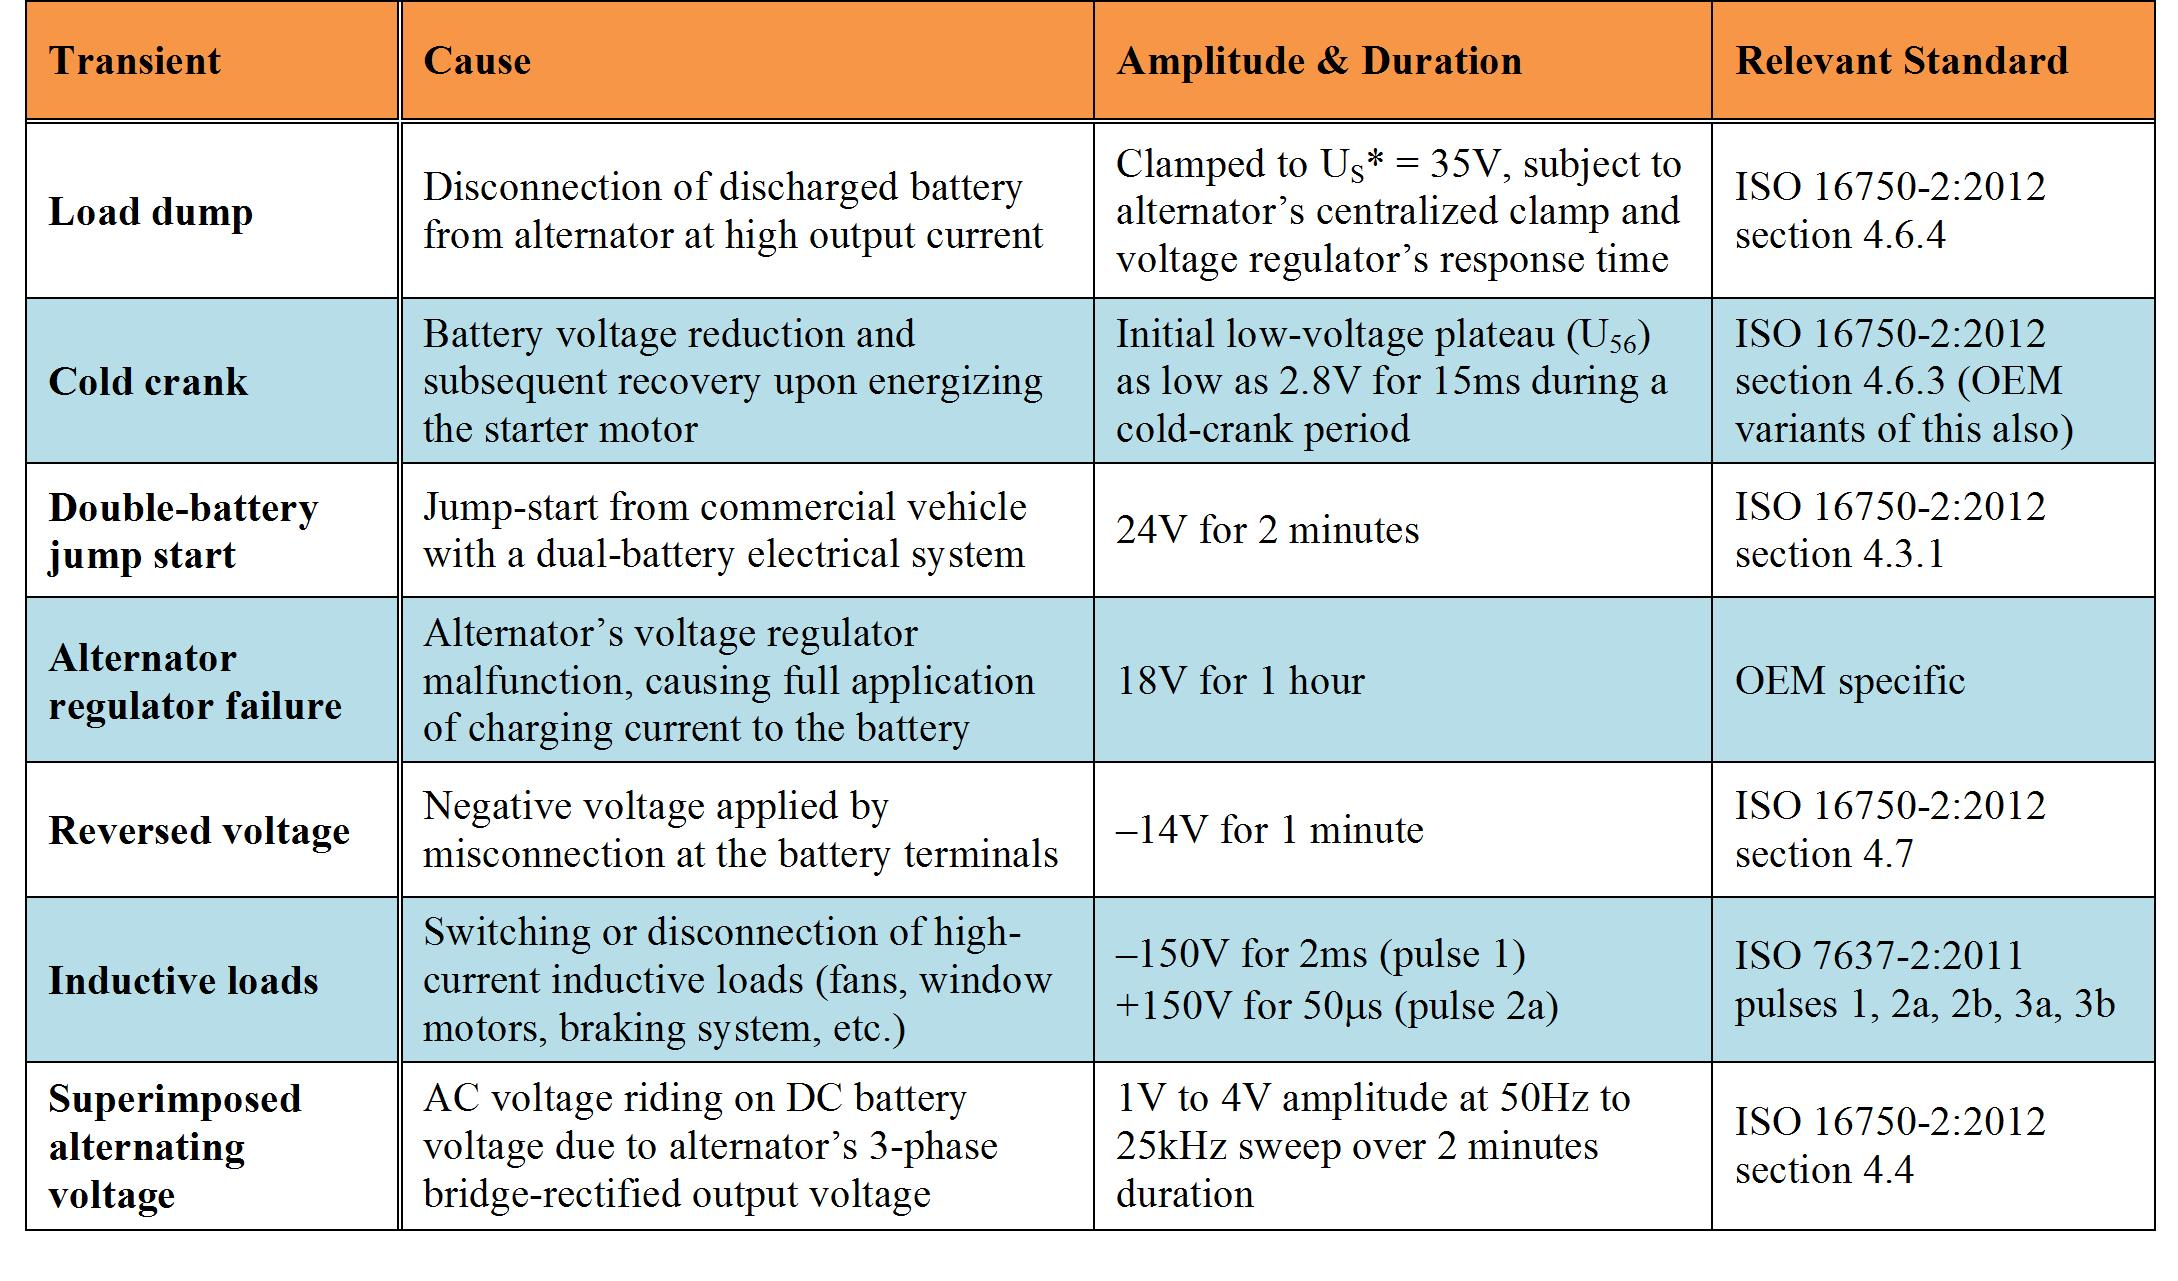 Buck Boost Regulator Benefits Automotive Conducted Immunity Power Inductor Requirements For Dc Converters And Filters In Table 1 Battery Continuous Transient Disturbances With Related Test Levels